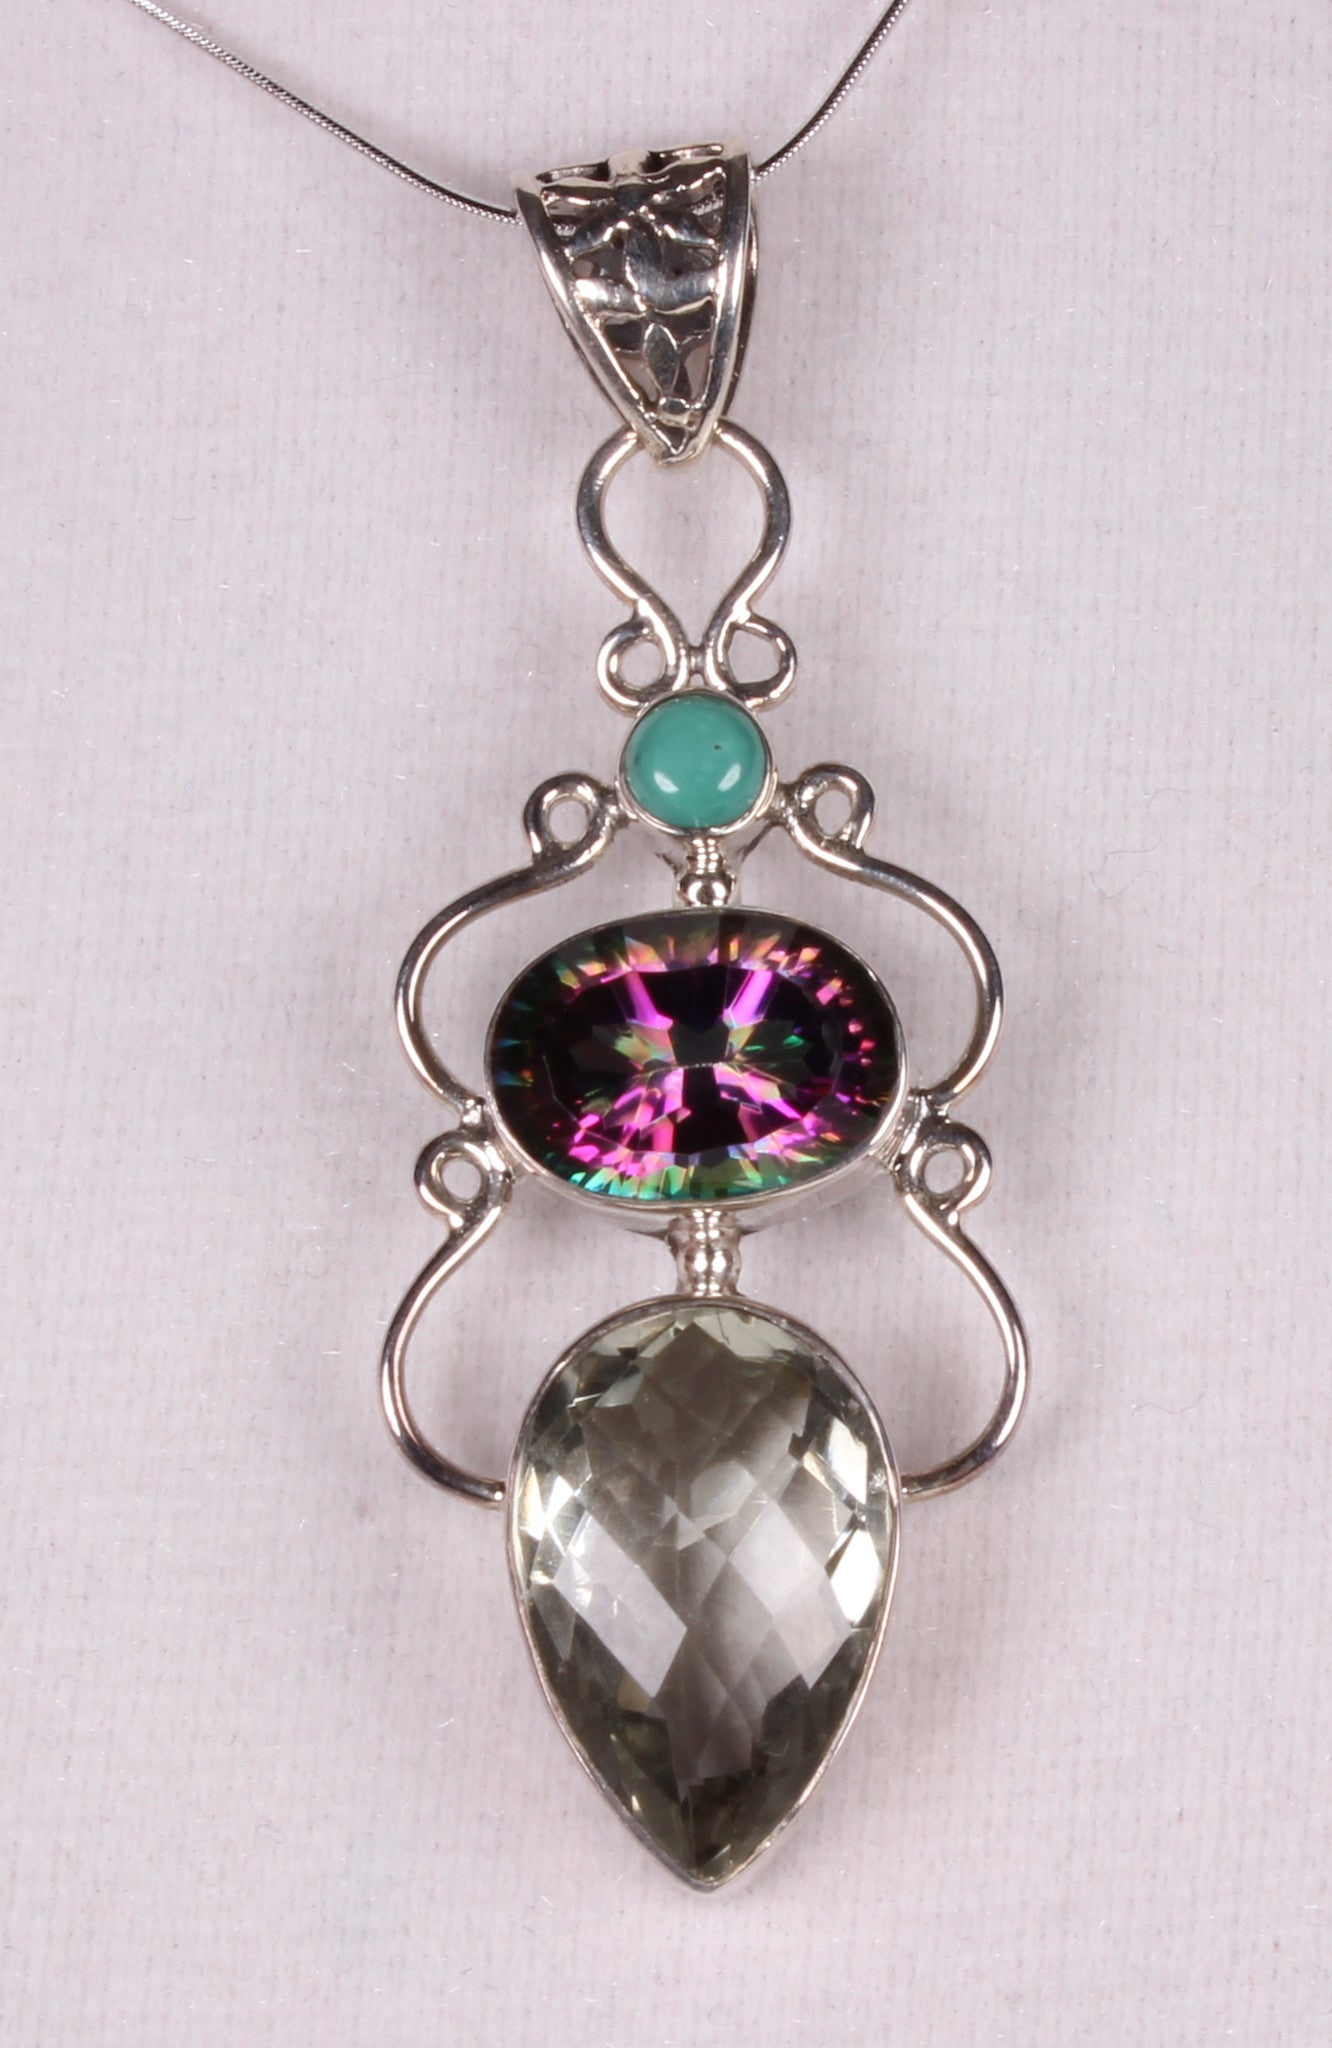 Mystic Quartz and Green Amethyst Sterling Silver Pendant